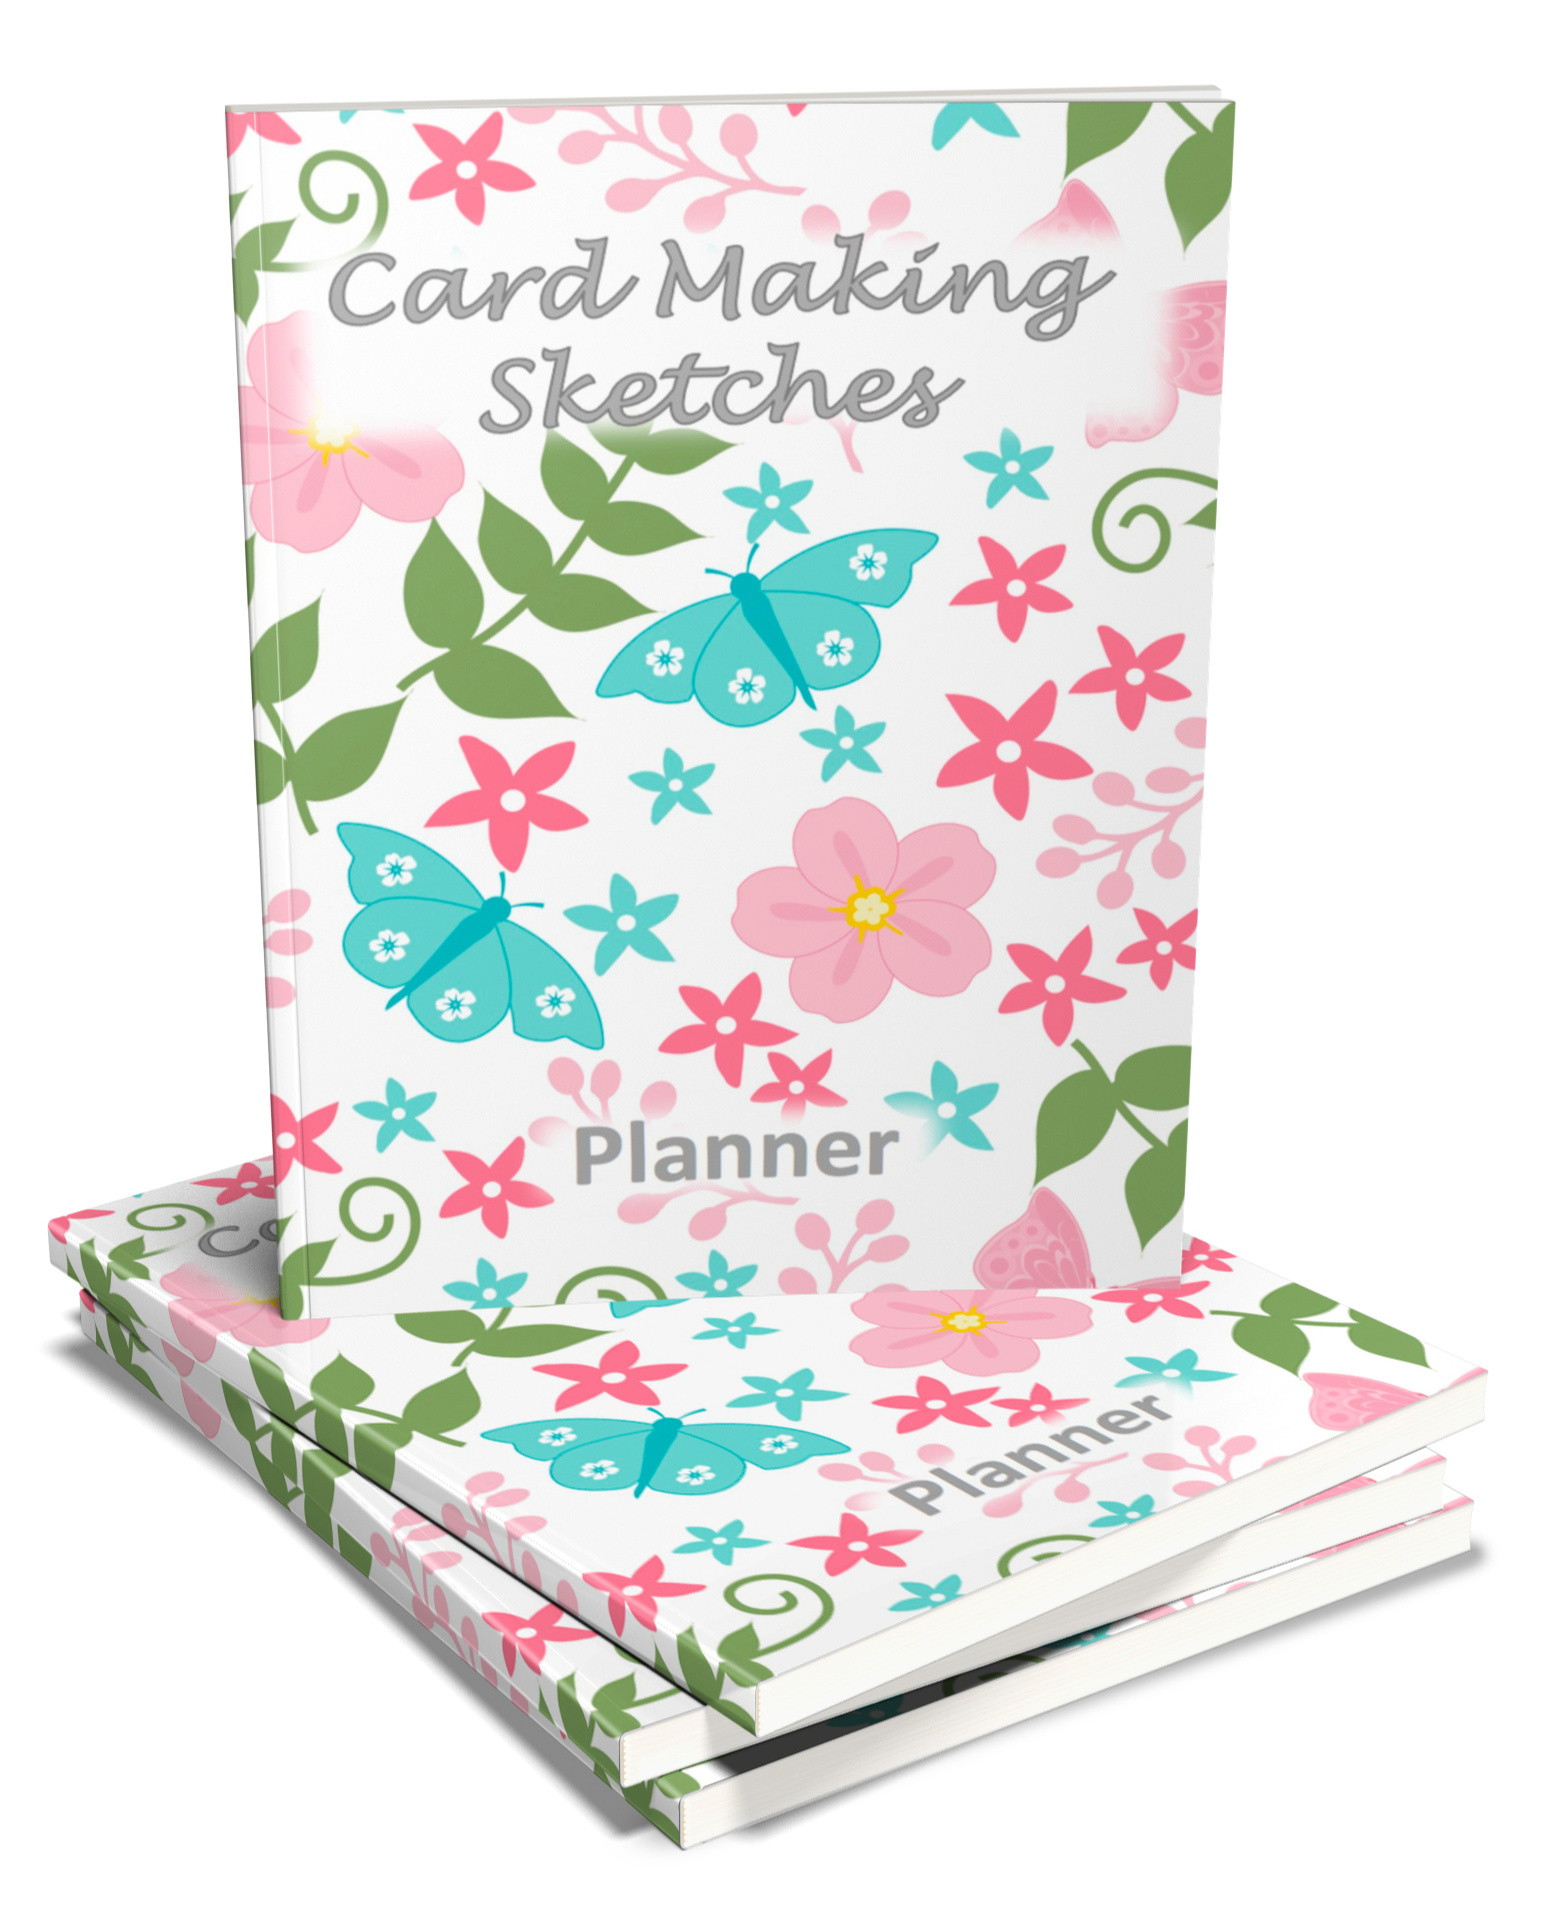 card making sketches - planner